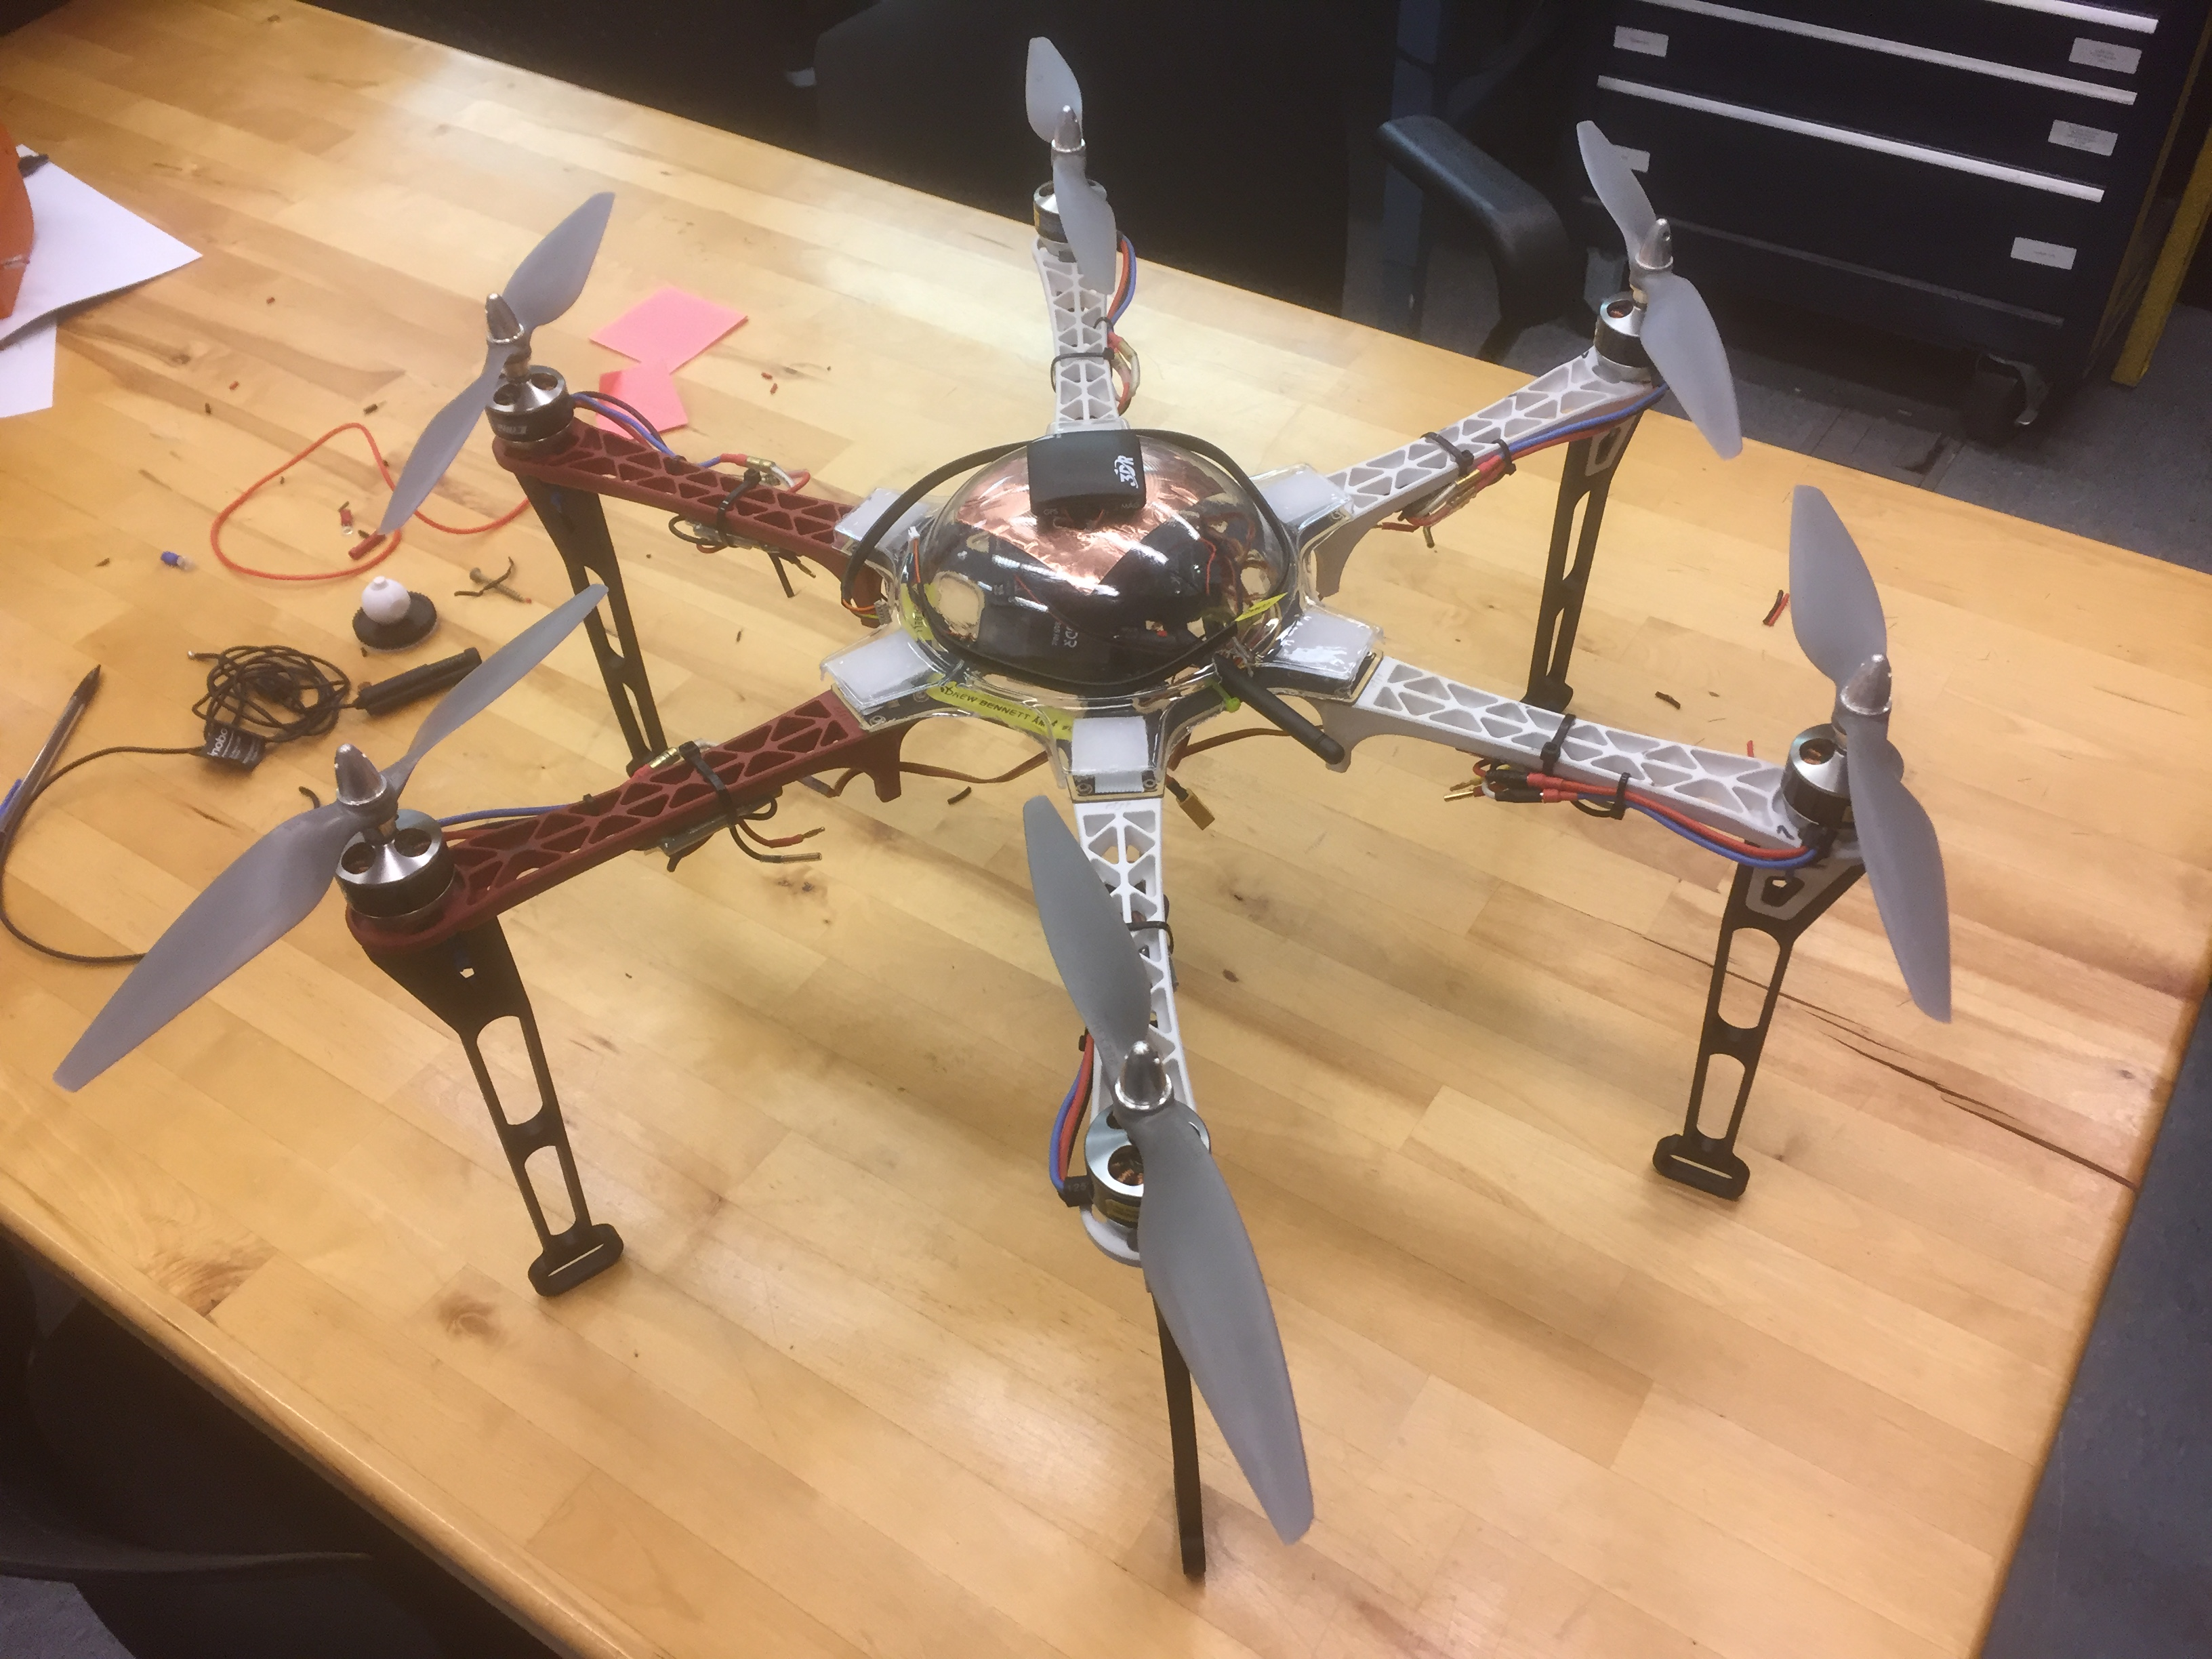 Frodo: The F550 Flamewheel Hexacopter